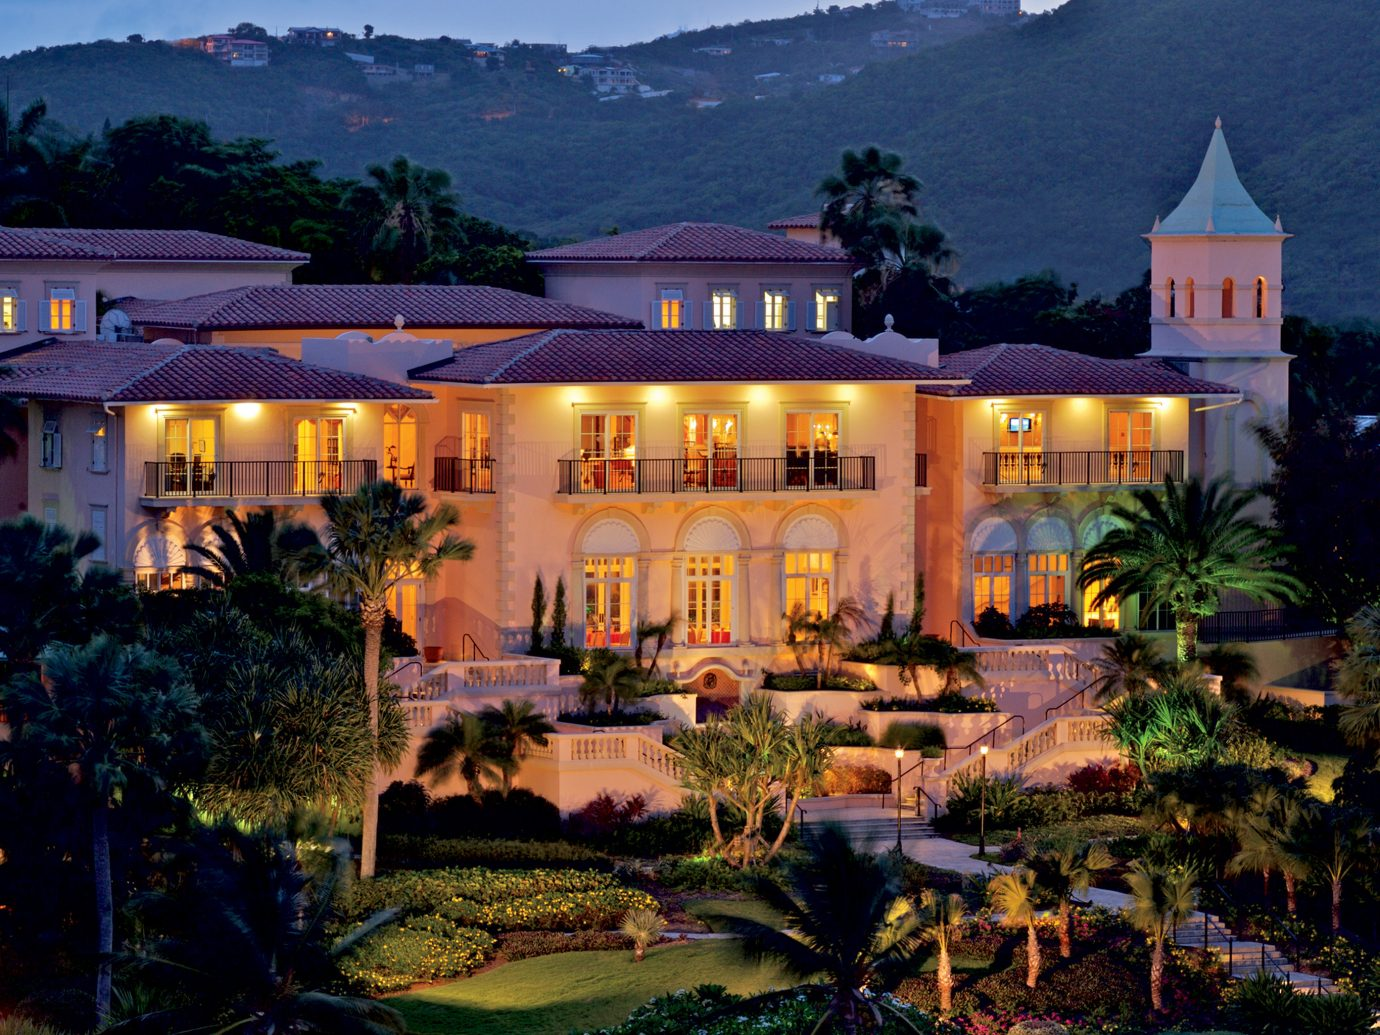 Hotels Romance outdoor building grass Resort estate house vacation mansion home palace landscape lighting hotel lush